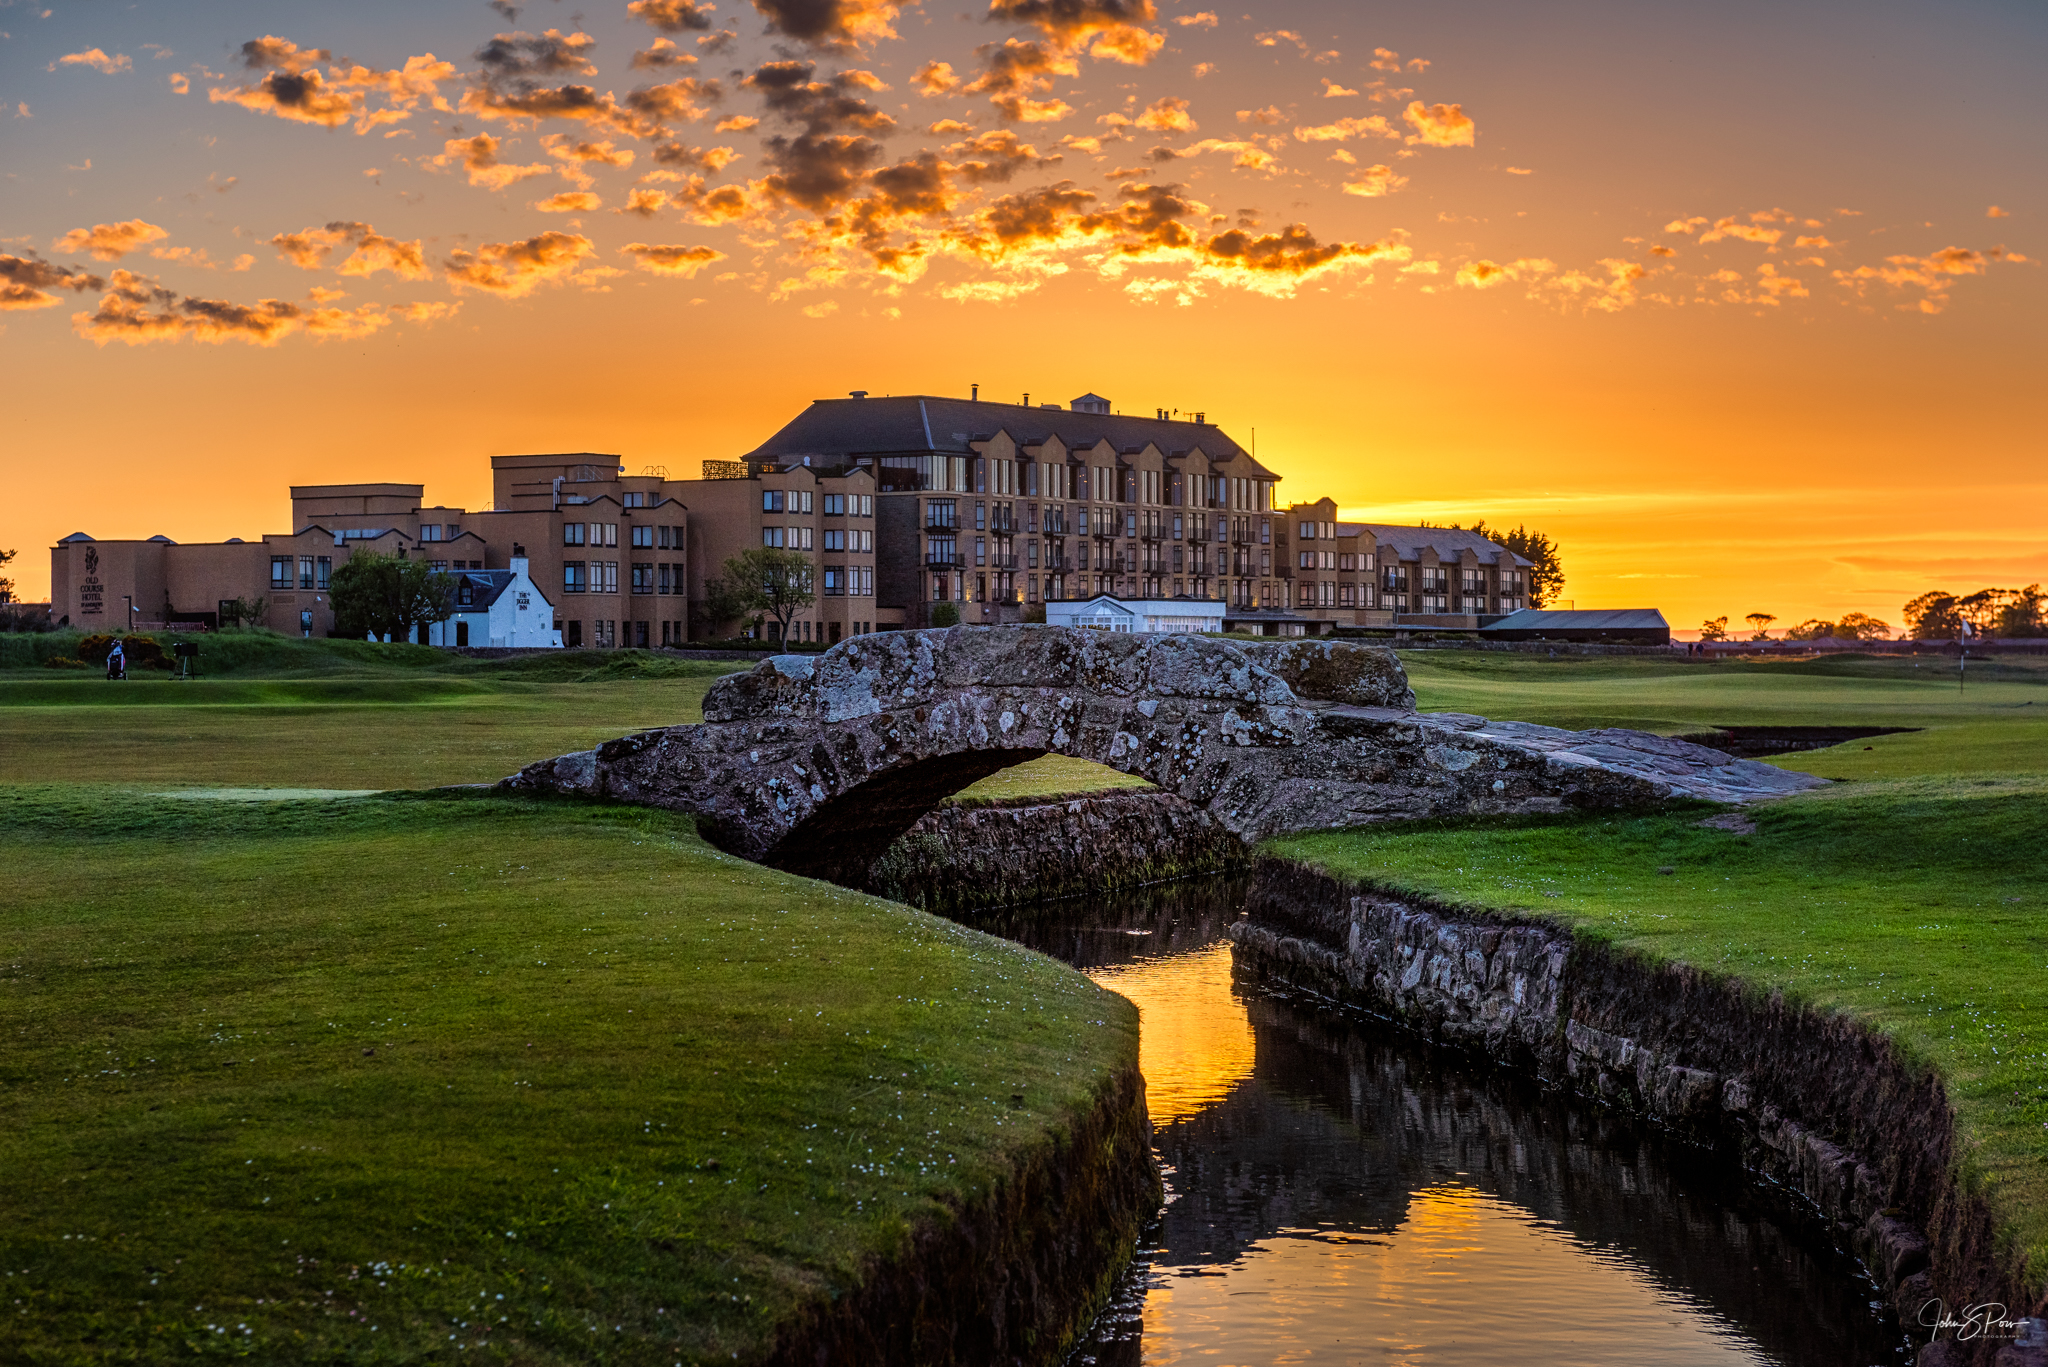 The Swilken Bridges and Old Course Hotel, St. Andrews